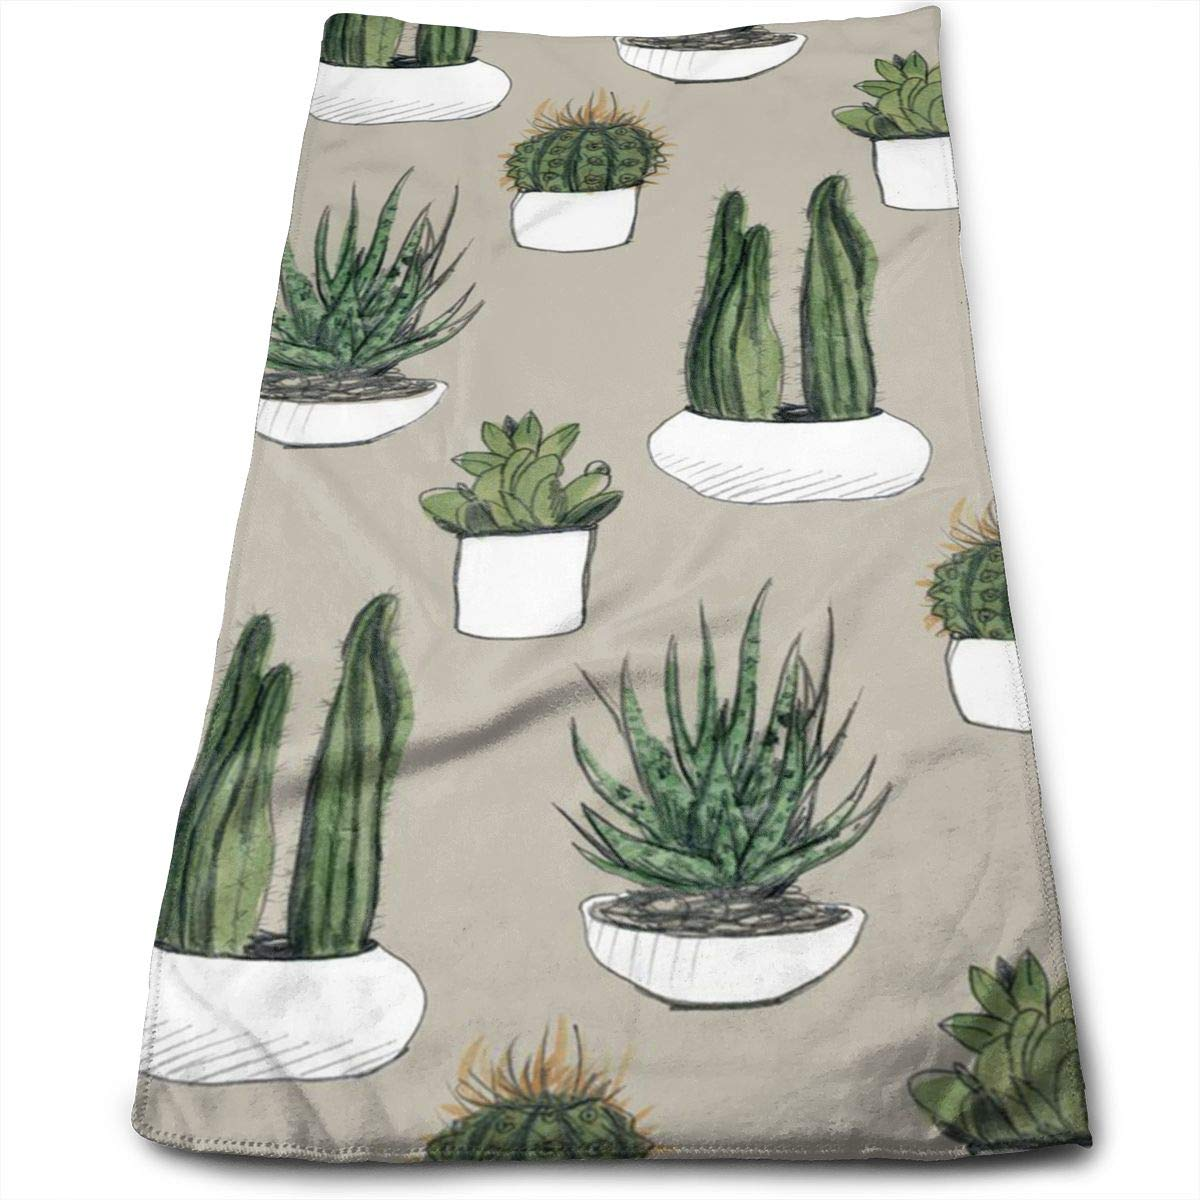 QiFfan22 Cotton Watercolor Cacti Succulents Dish Towels,Oversized Kitchen Towels for Drying,Cleaning,Cooking,Baking (12 X 27.5 Inch)